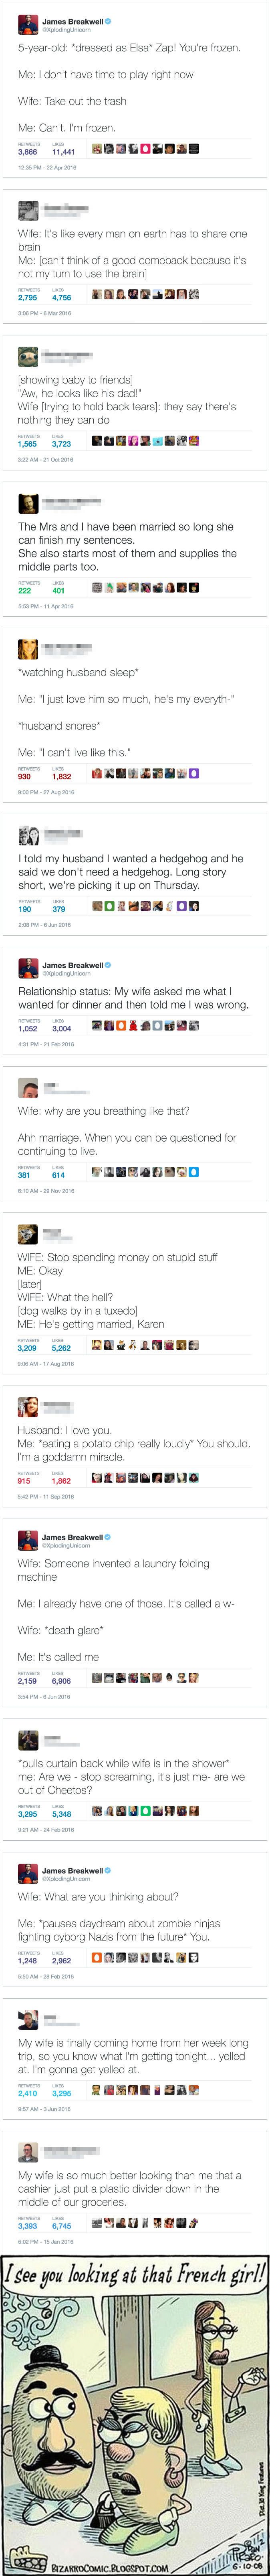 The Funniest Marriage Tweets